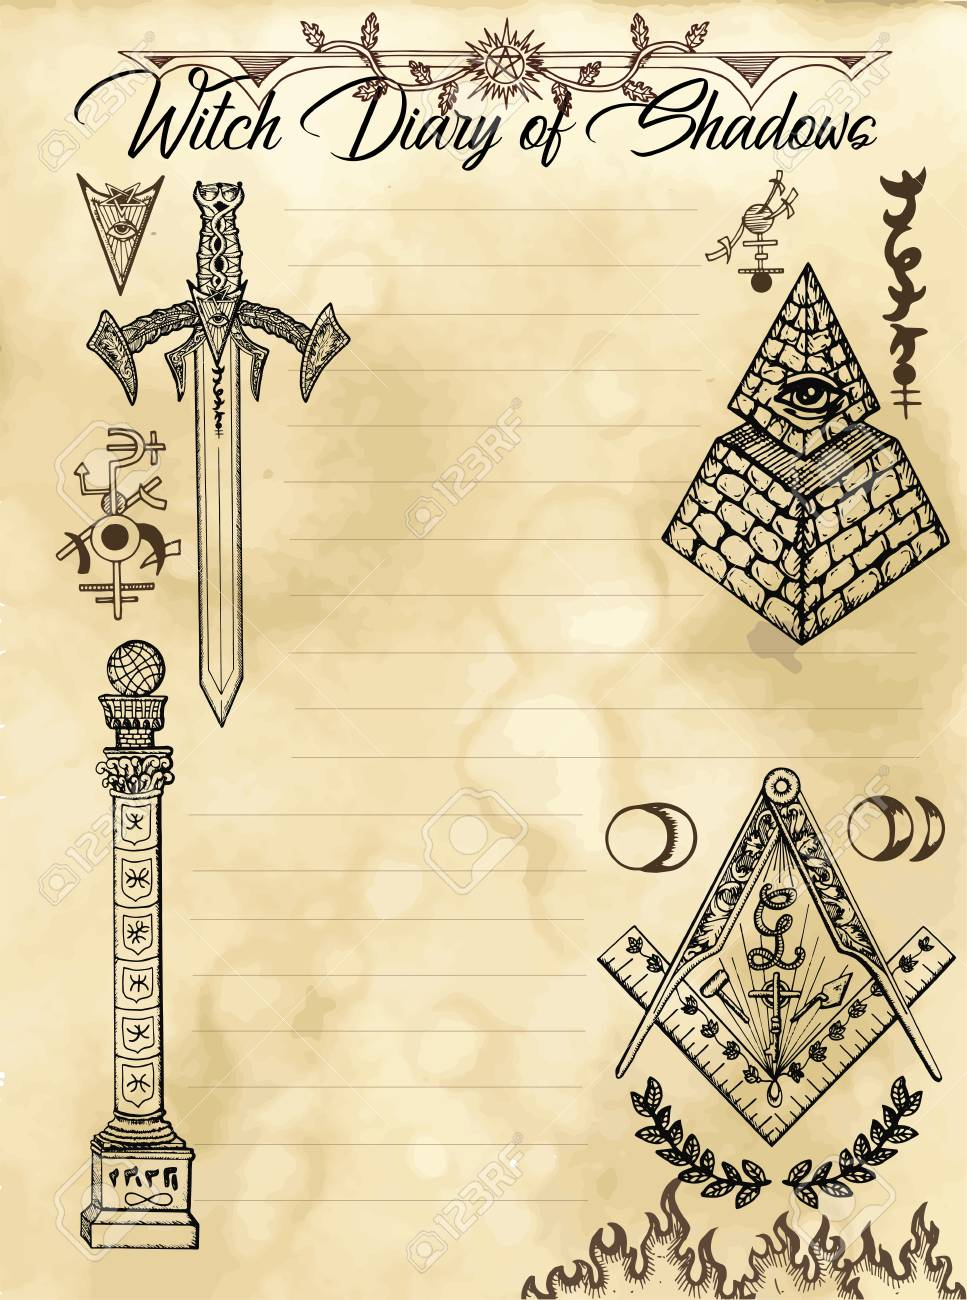 Witch diary page 31 of 31 with freemasonry and secret society